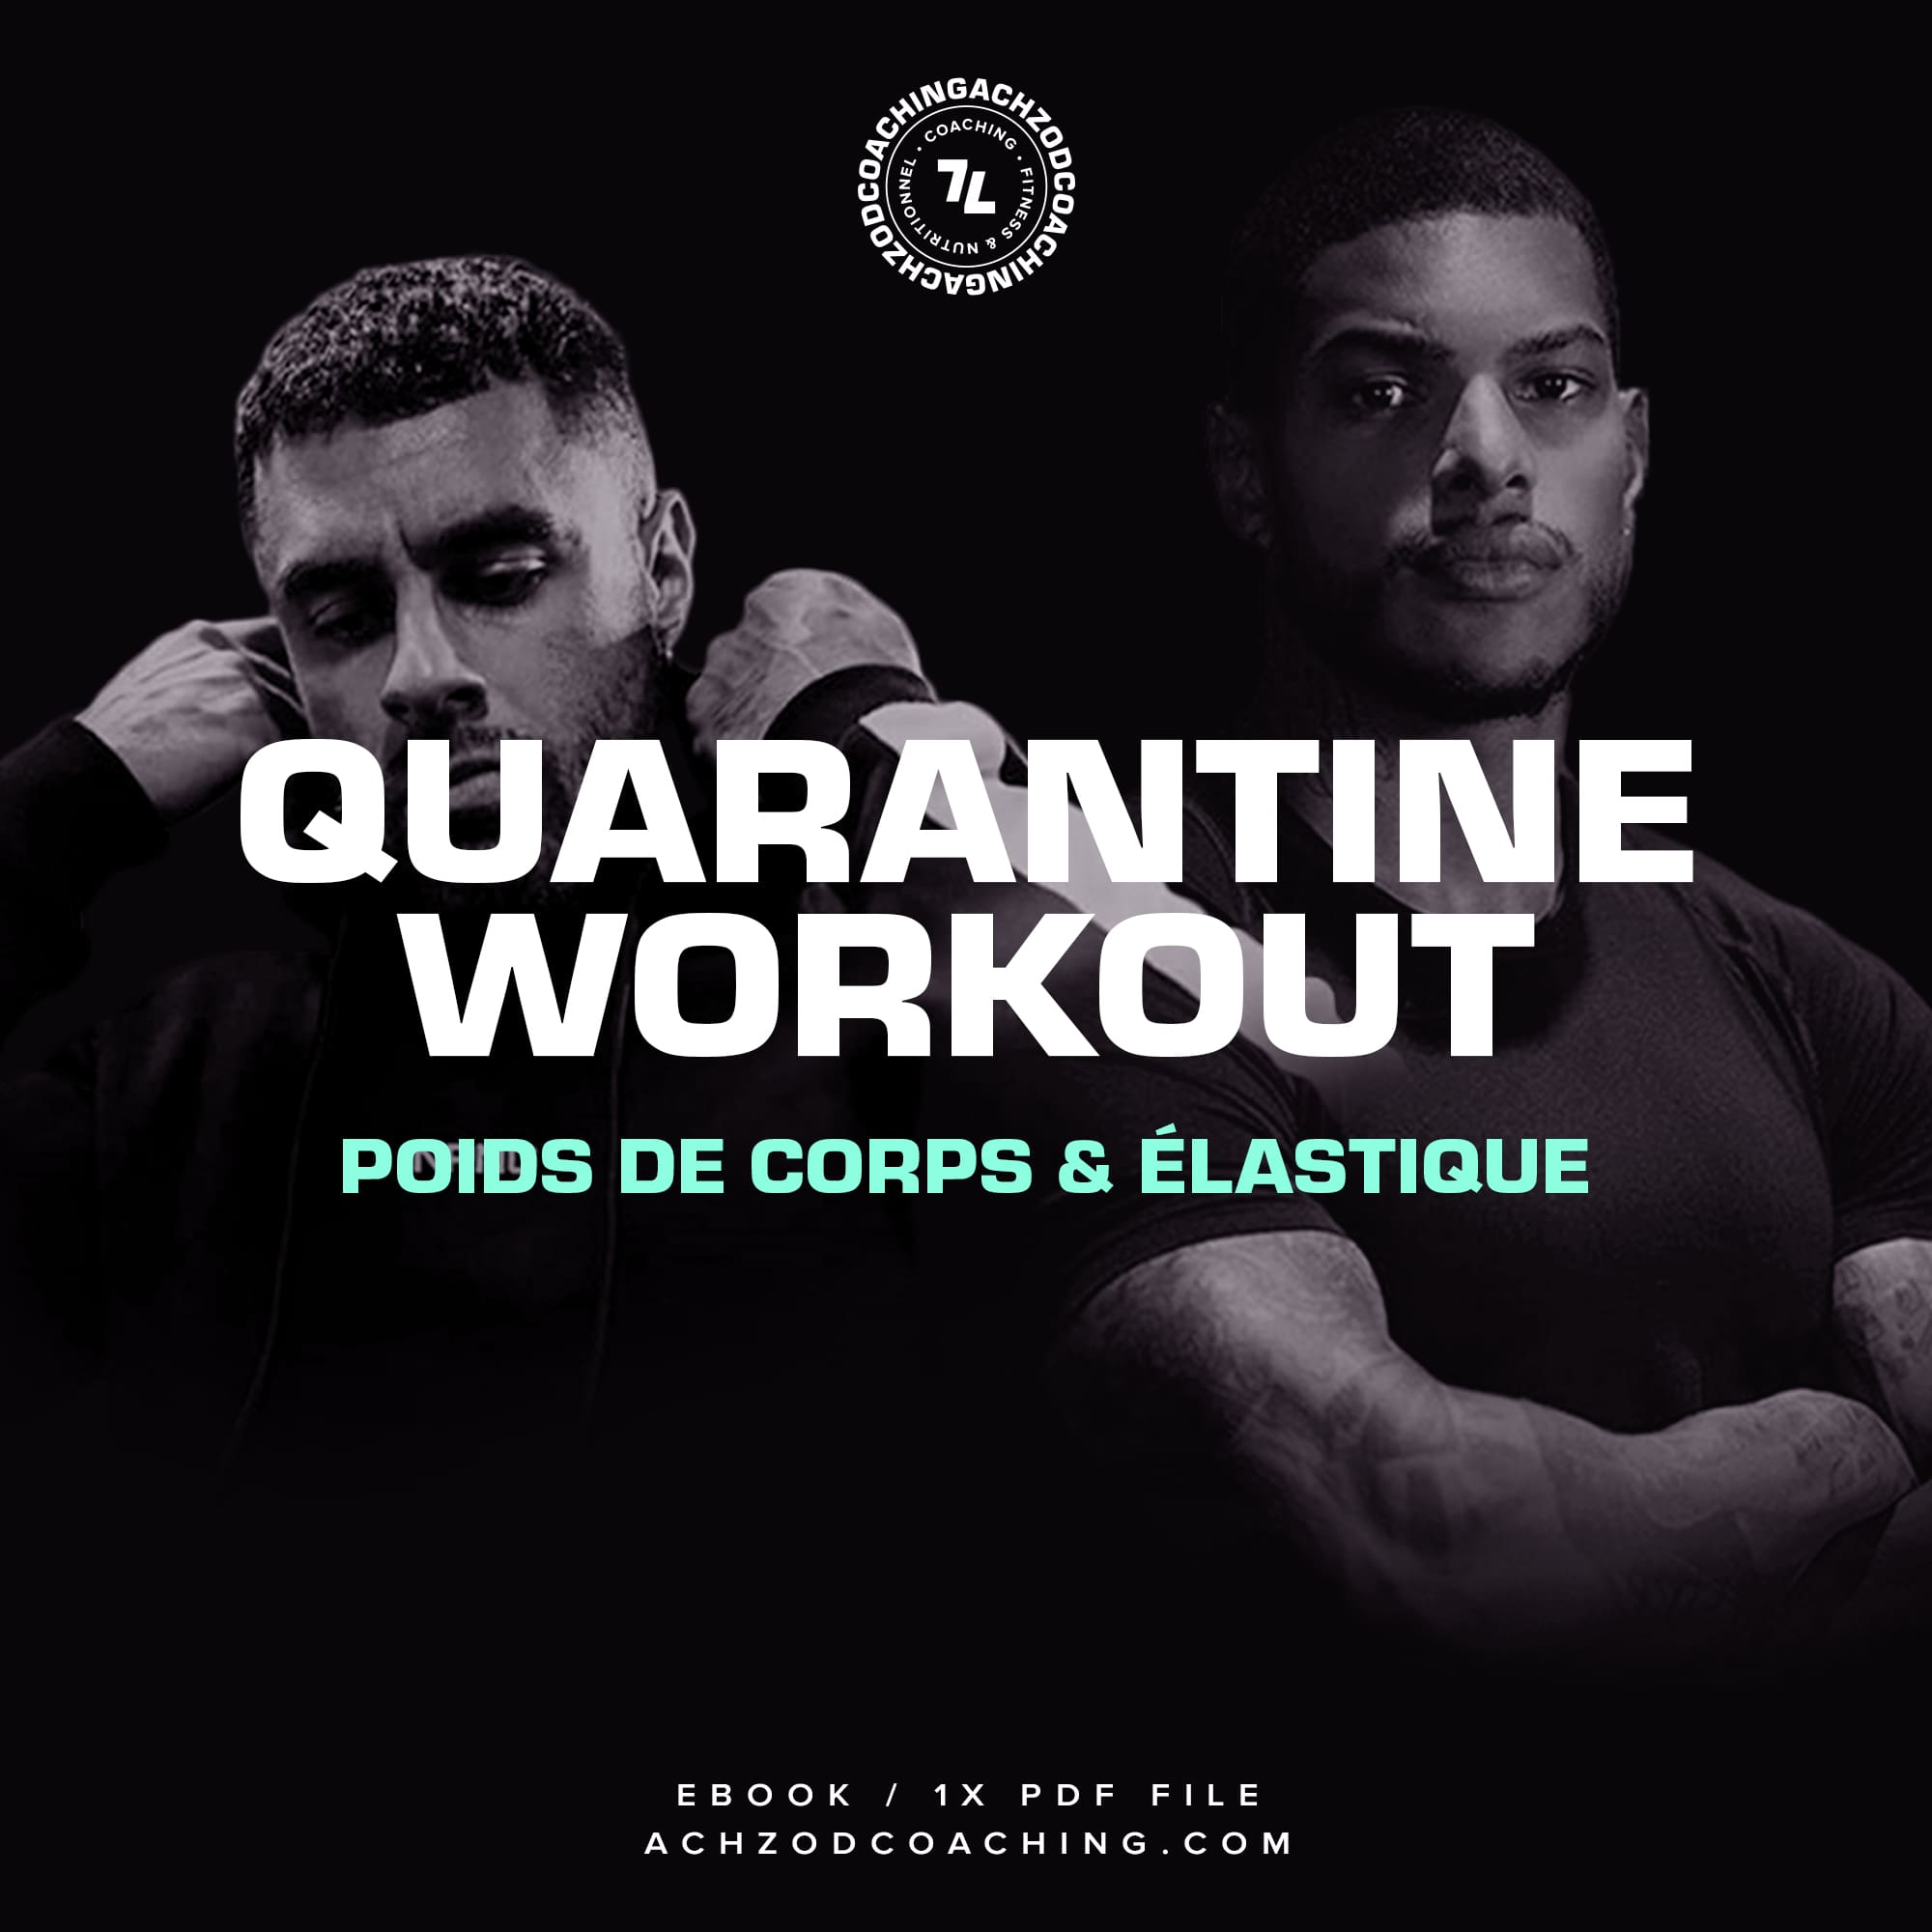 quarantine workout ebook cover